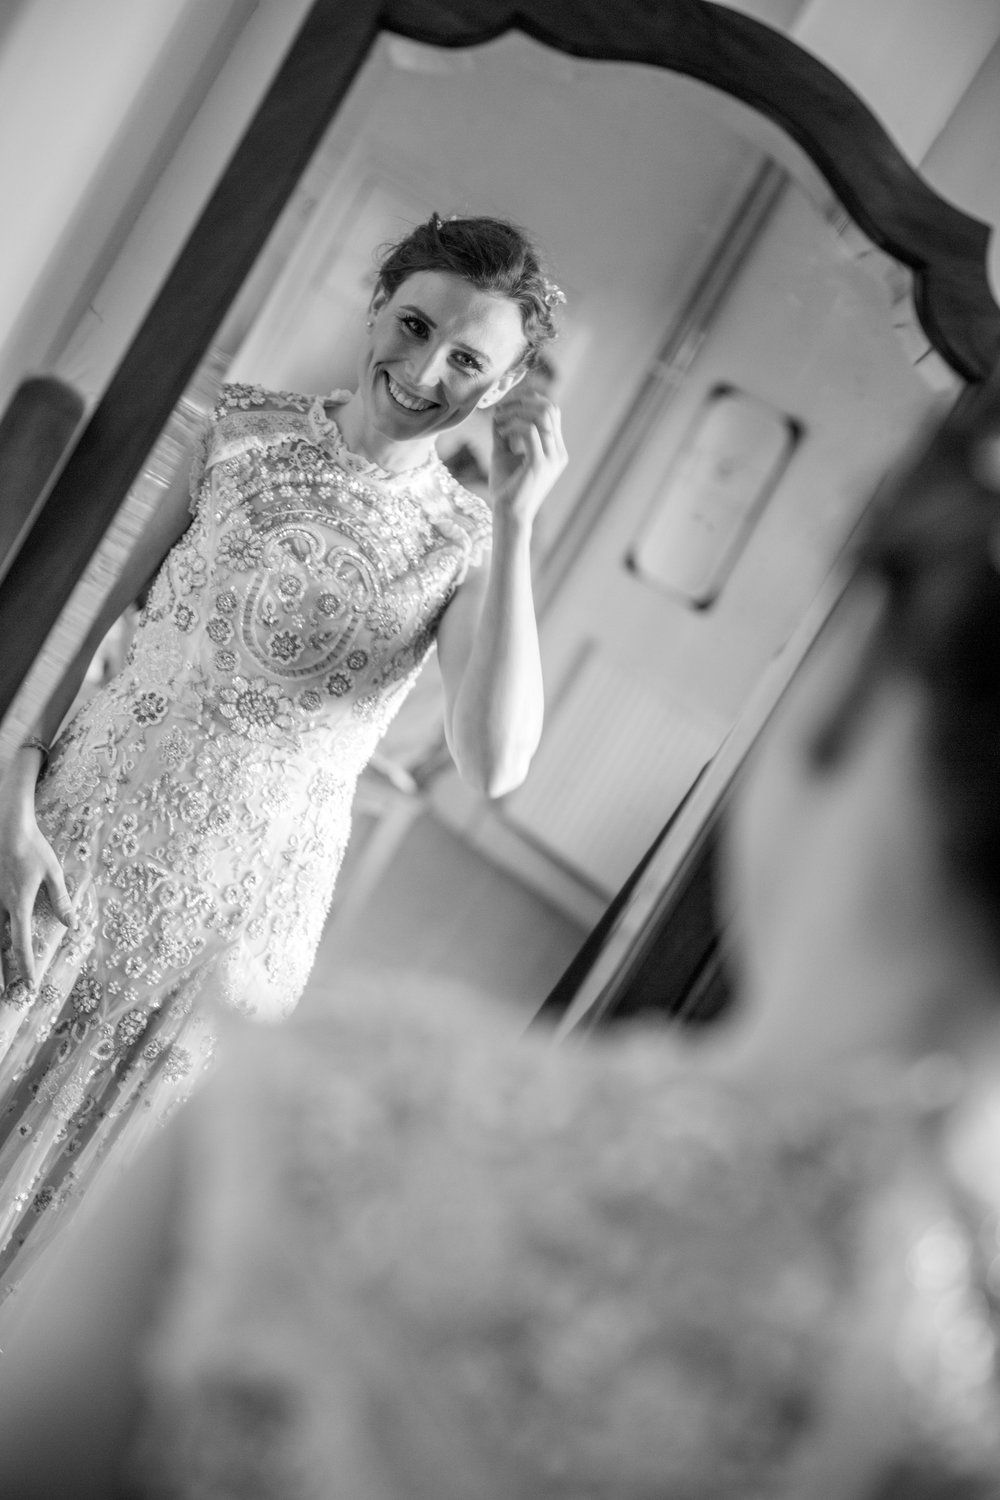 Jess & Ben - Bristol Wedding Photographer - Wright Wedding Photography - 44